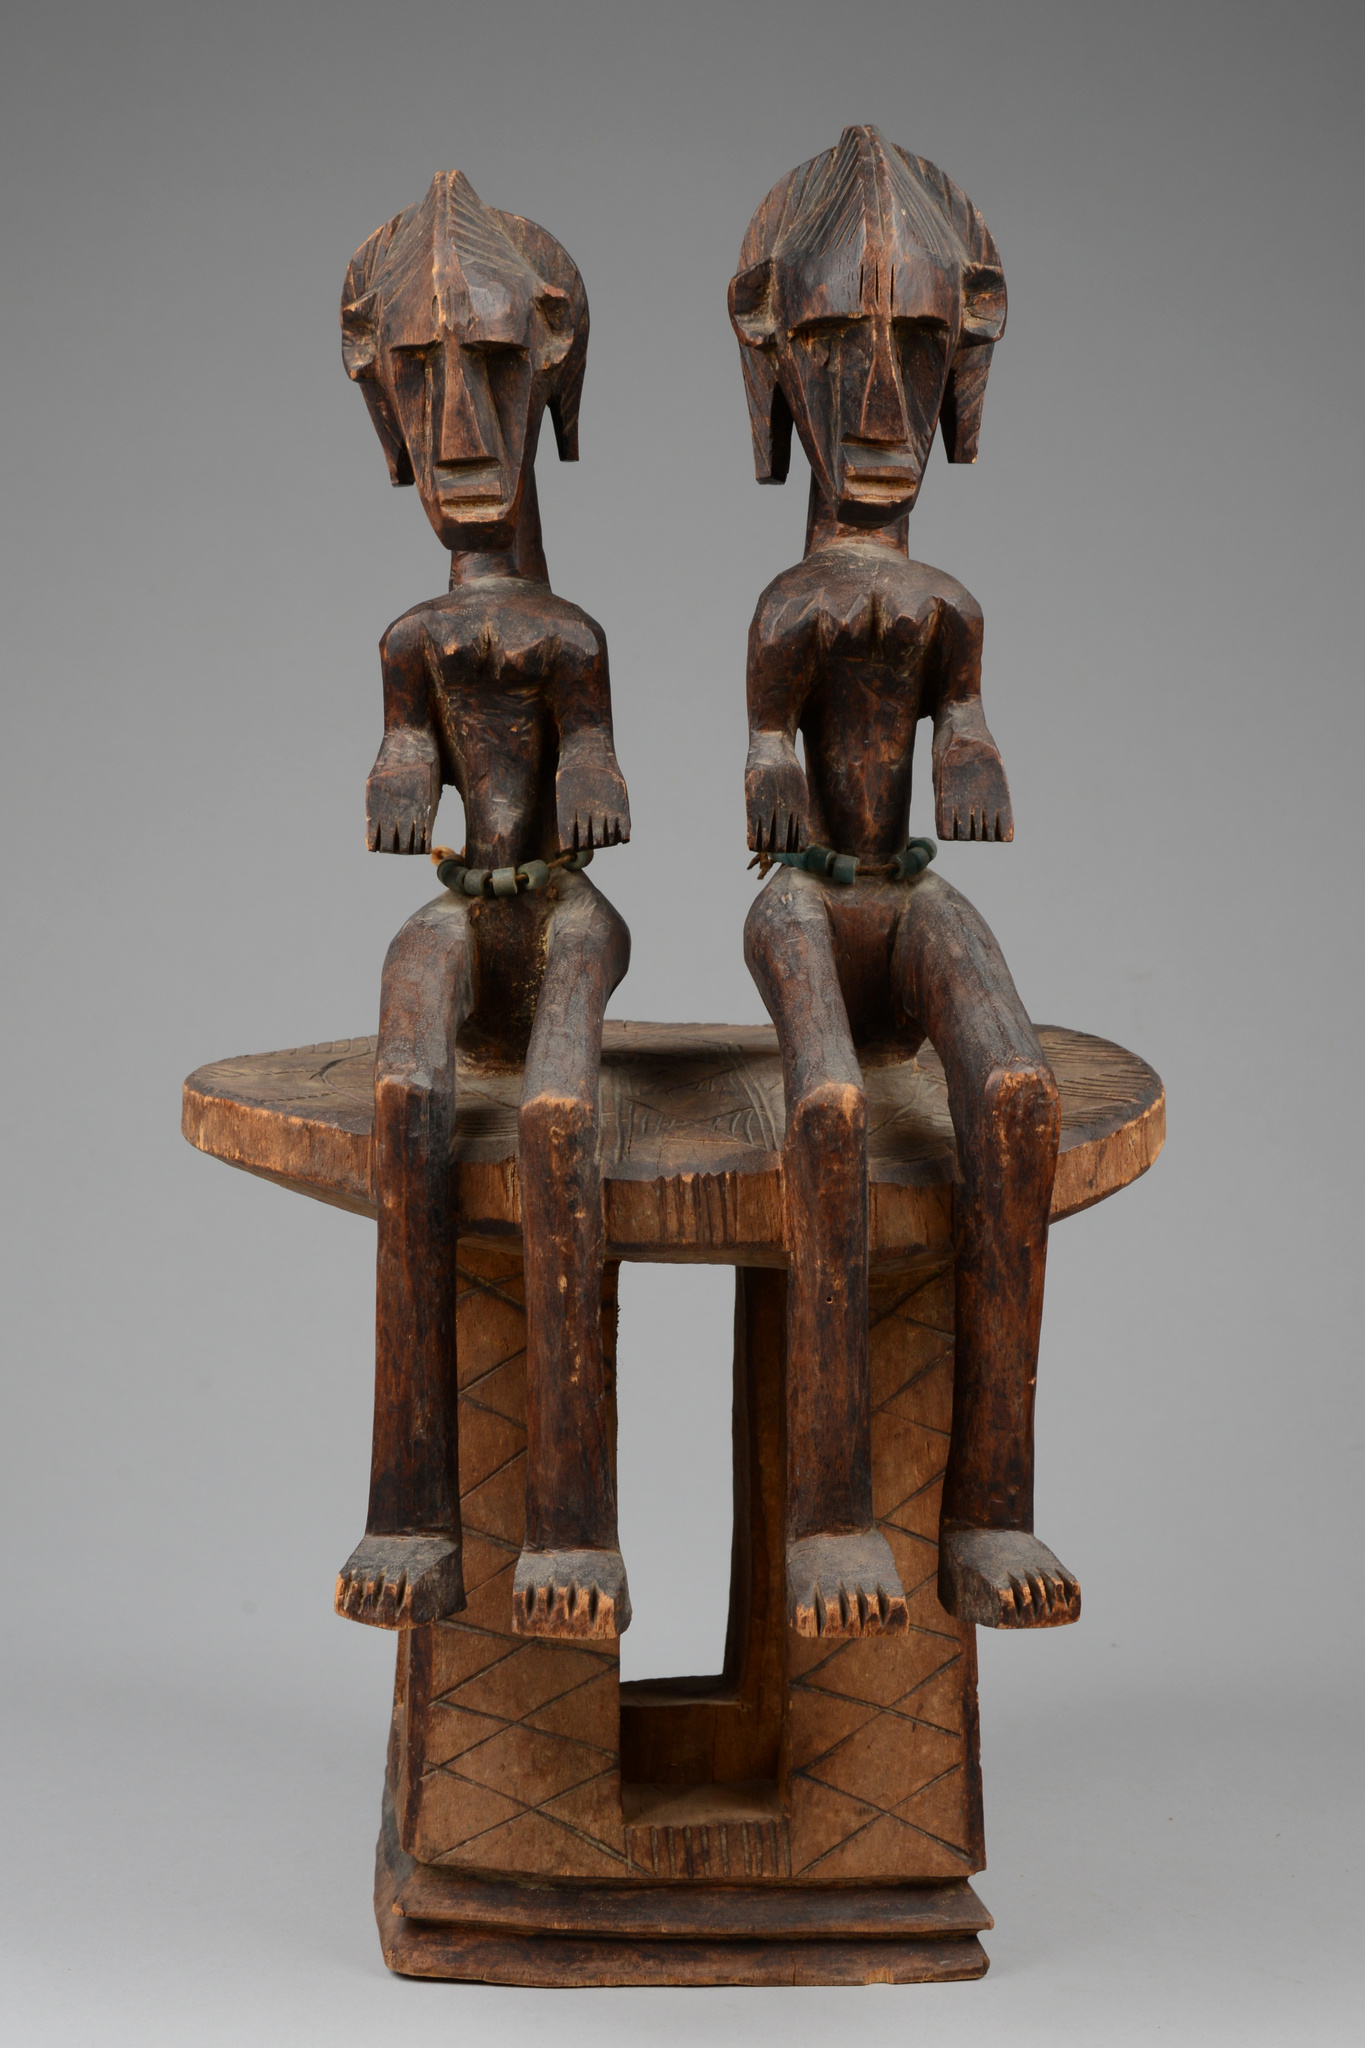 Stool with a pair of figures, around 1910/20